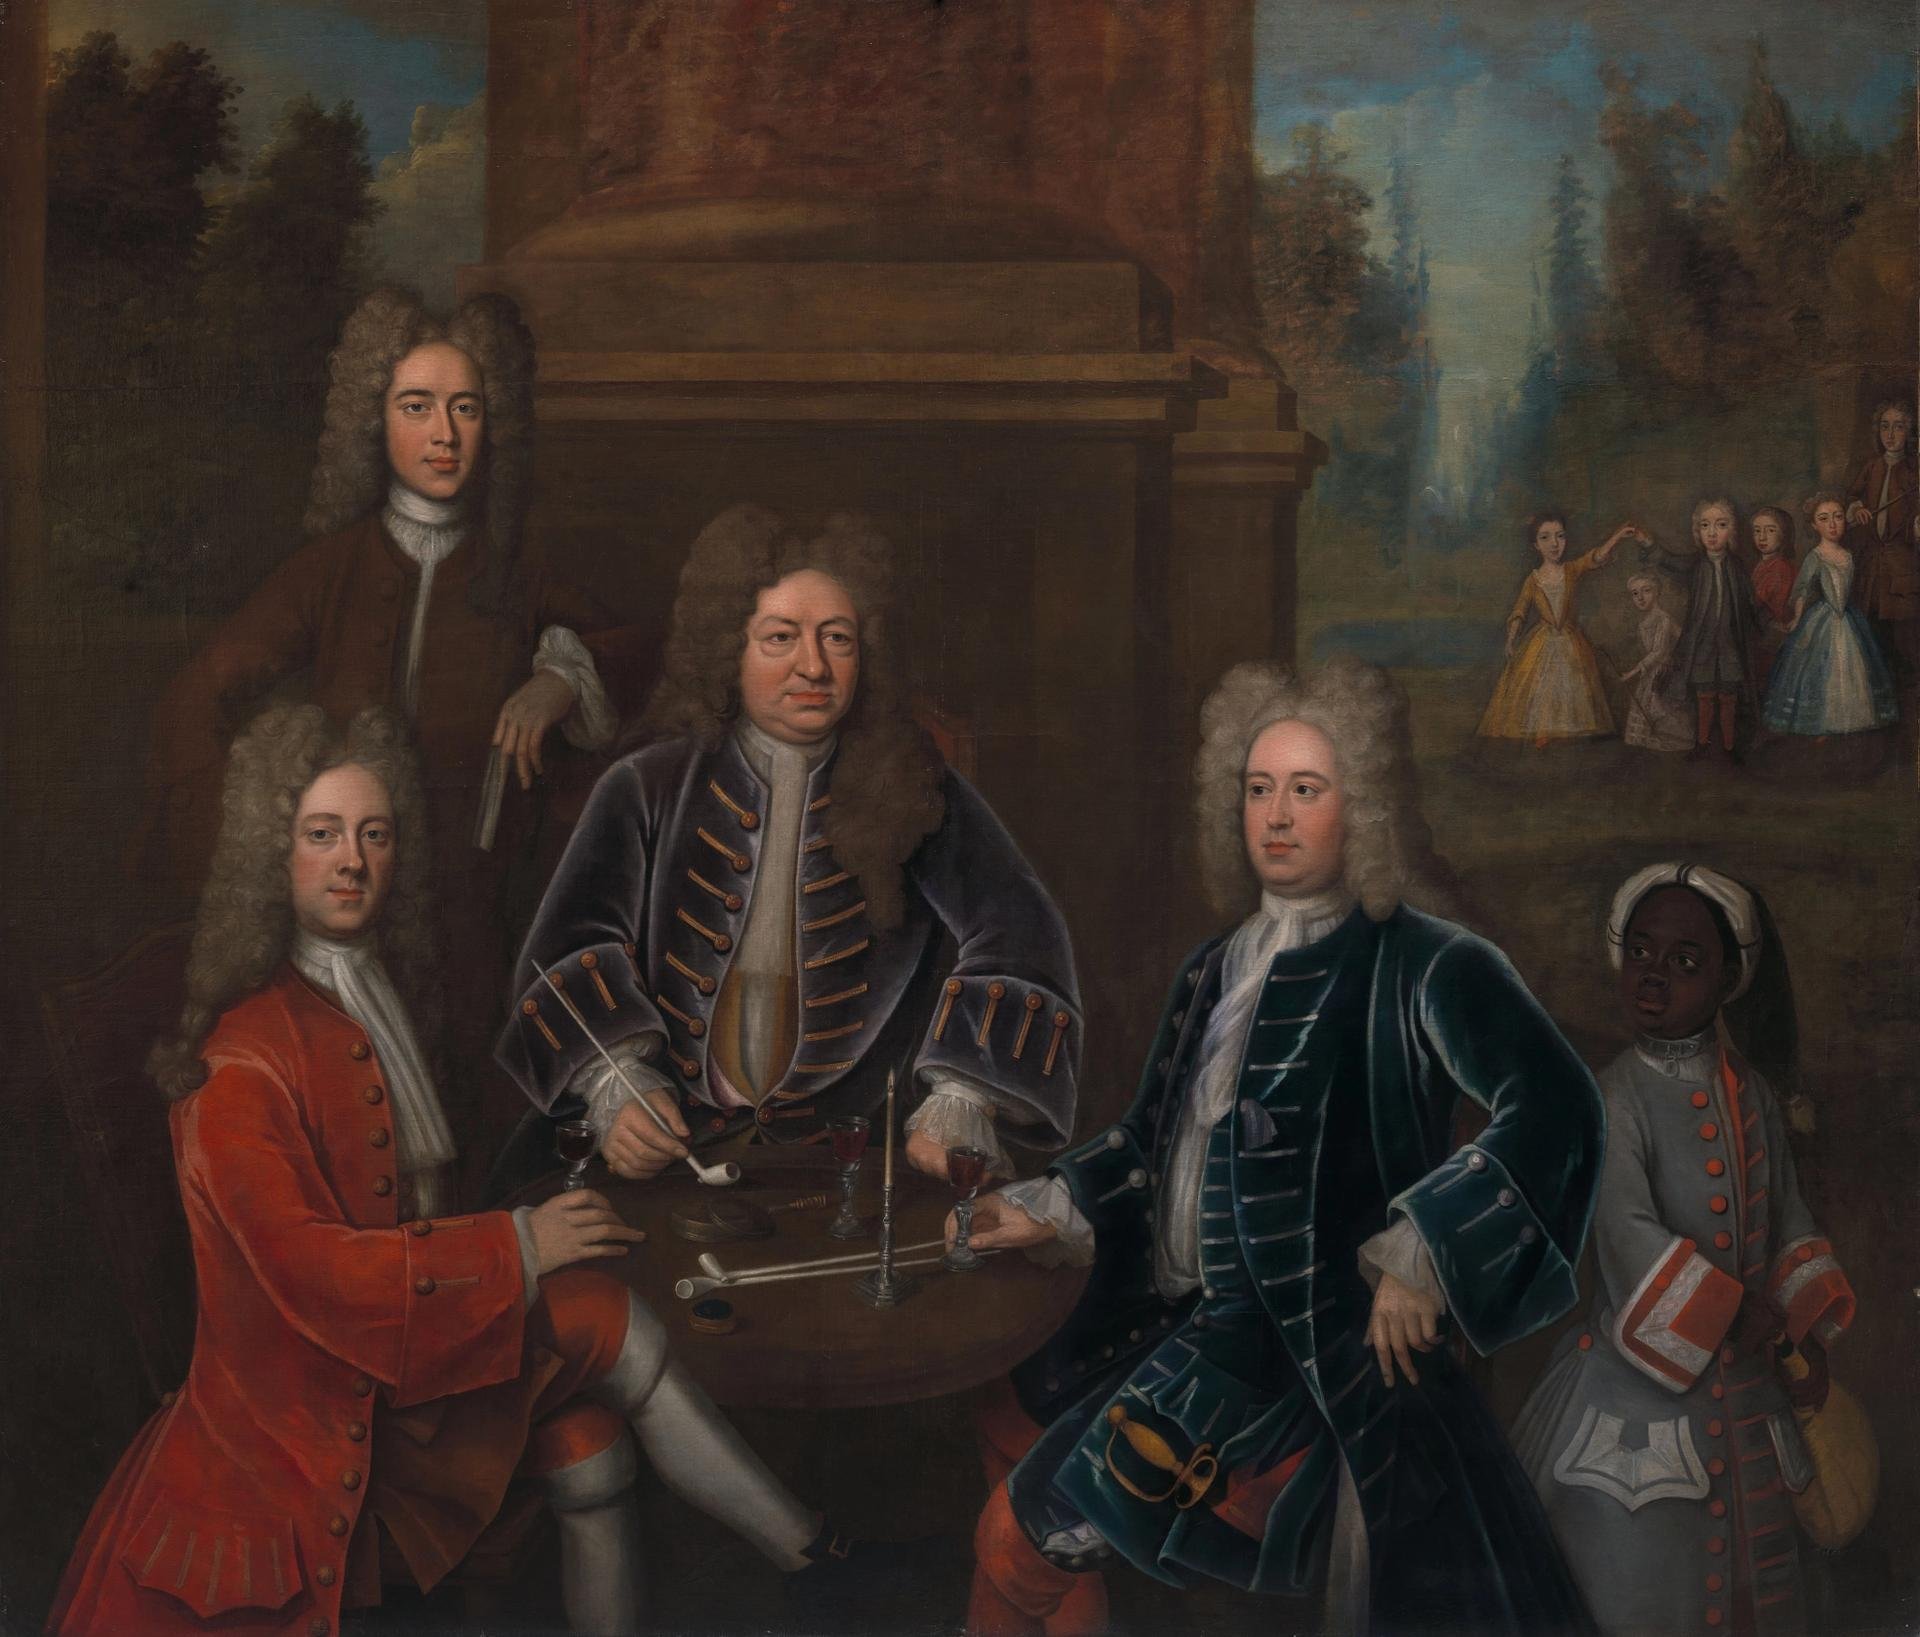 A portrait of Elihu Yale with Members of His Family and an Enslaved Child (around 1719), attributed to John Verelst. Courtesy of the Yale Center for British Art